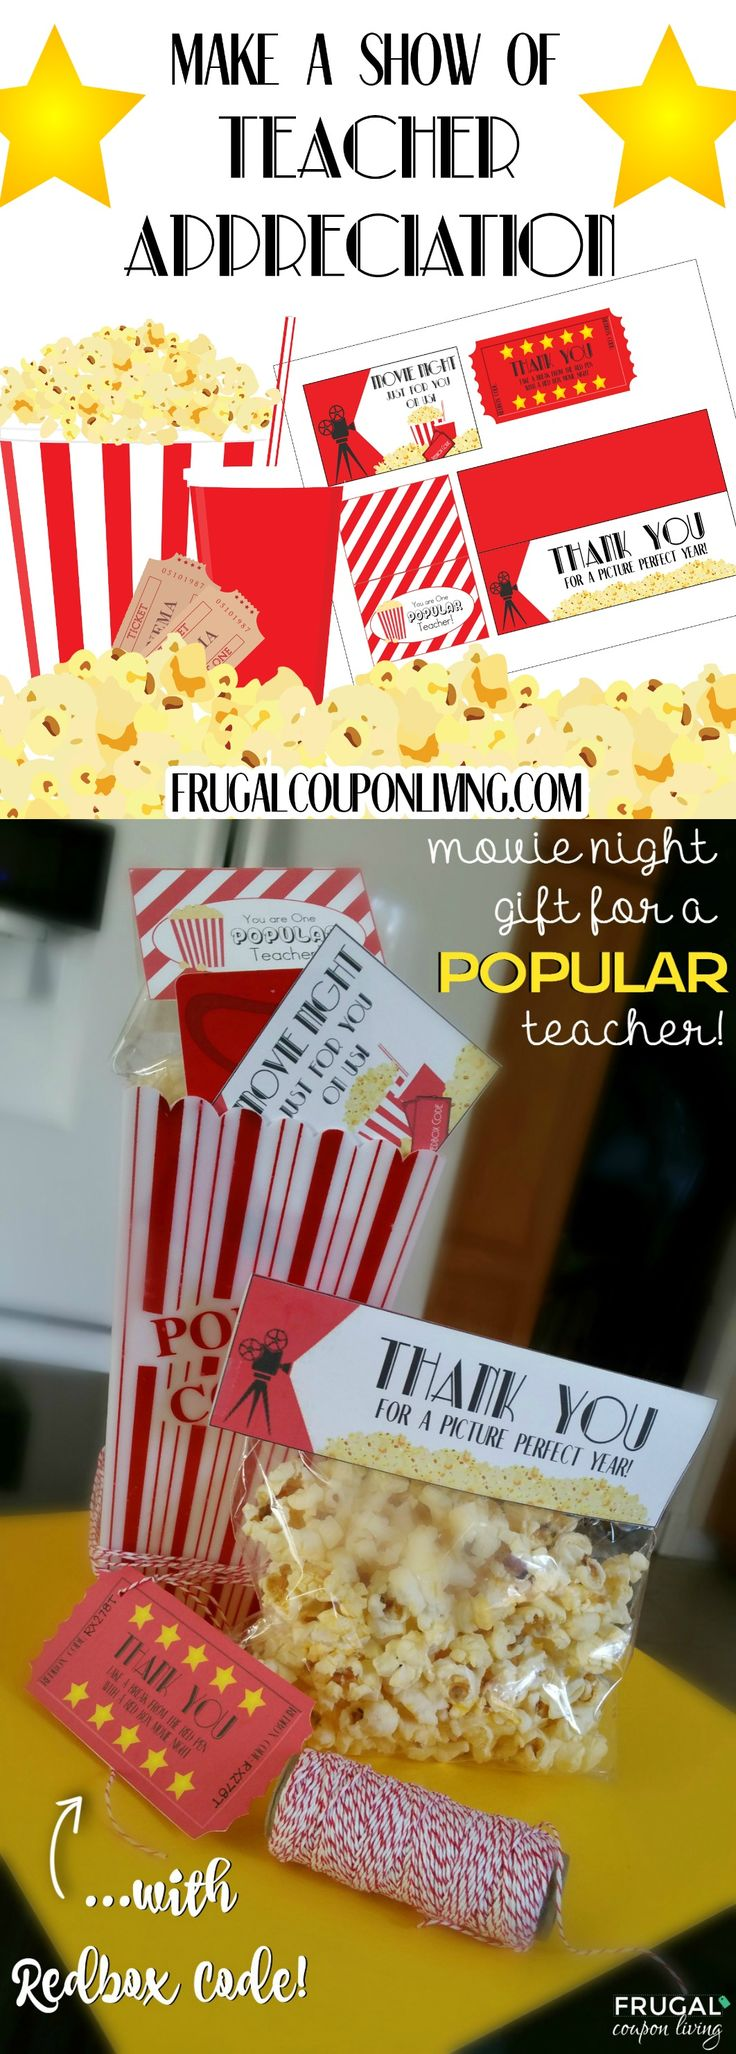 Looking for a fun way to celebrate a teacher?  Print your free Movie Night Teacher Appreciation Gift for a POPULAR teacher. Redbox Code Gift Idea.